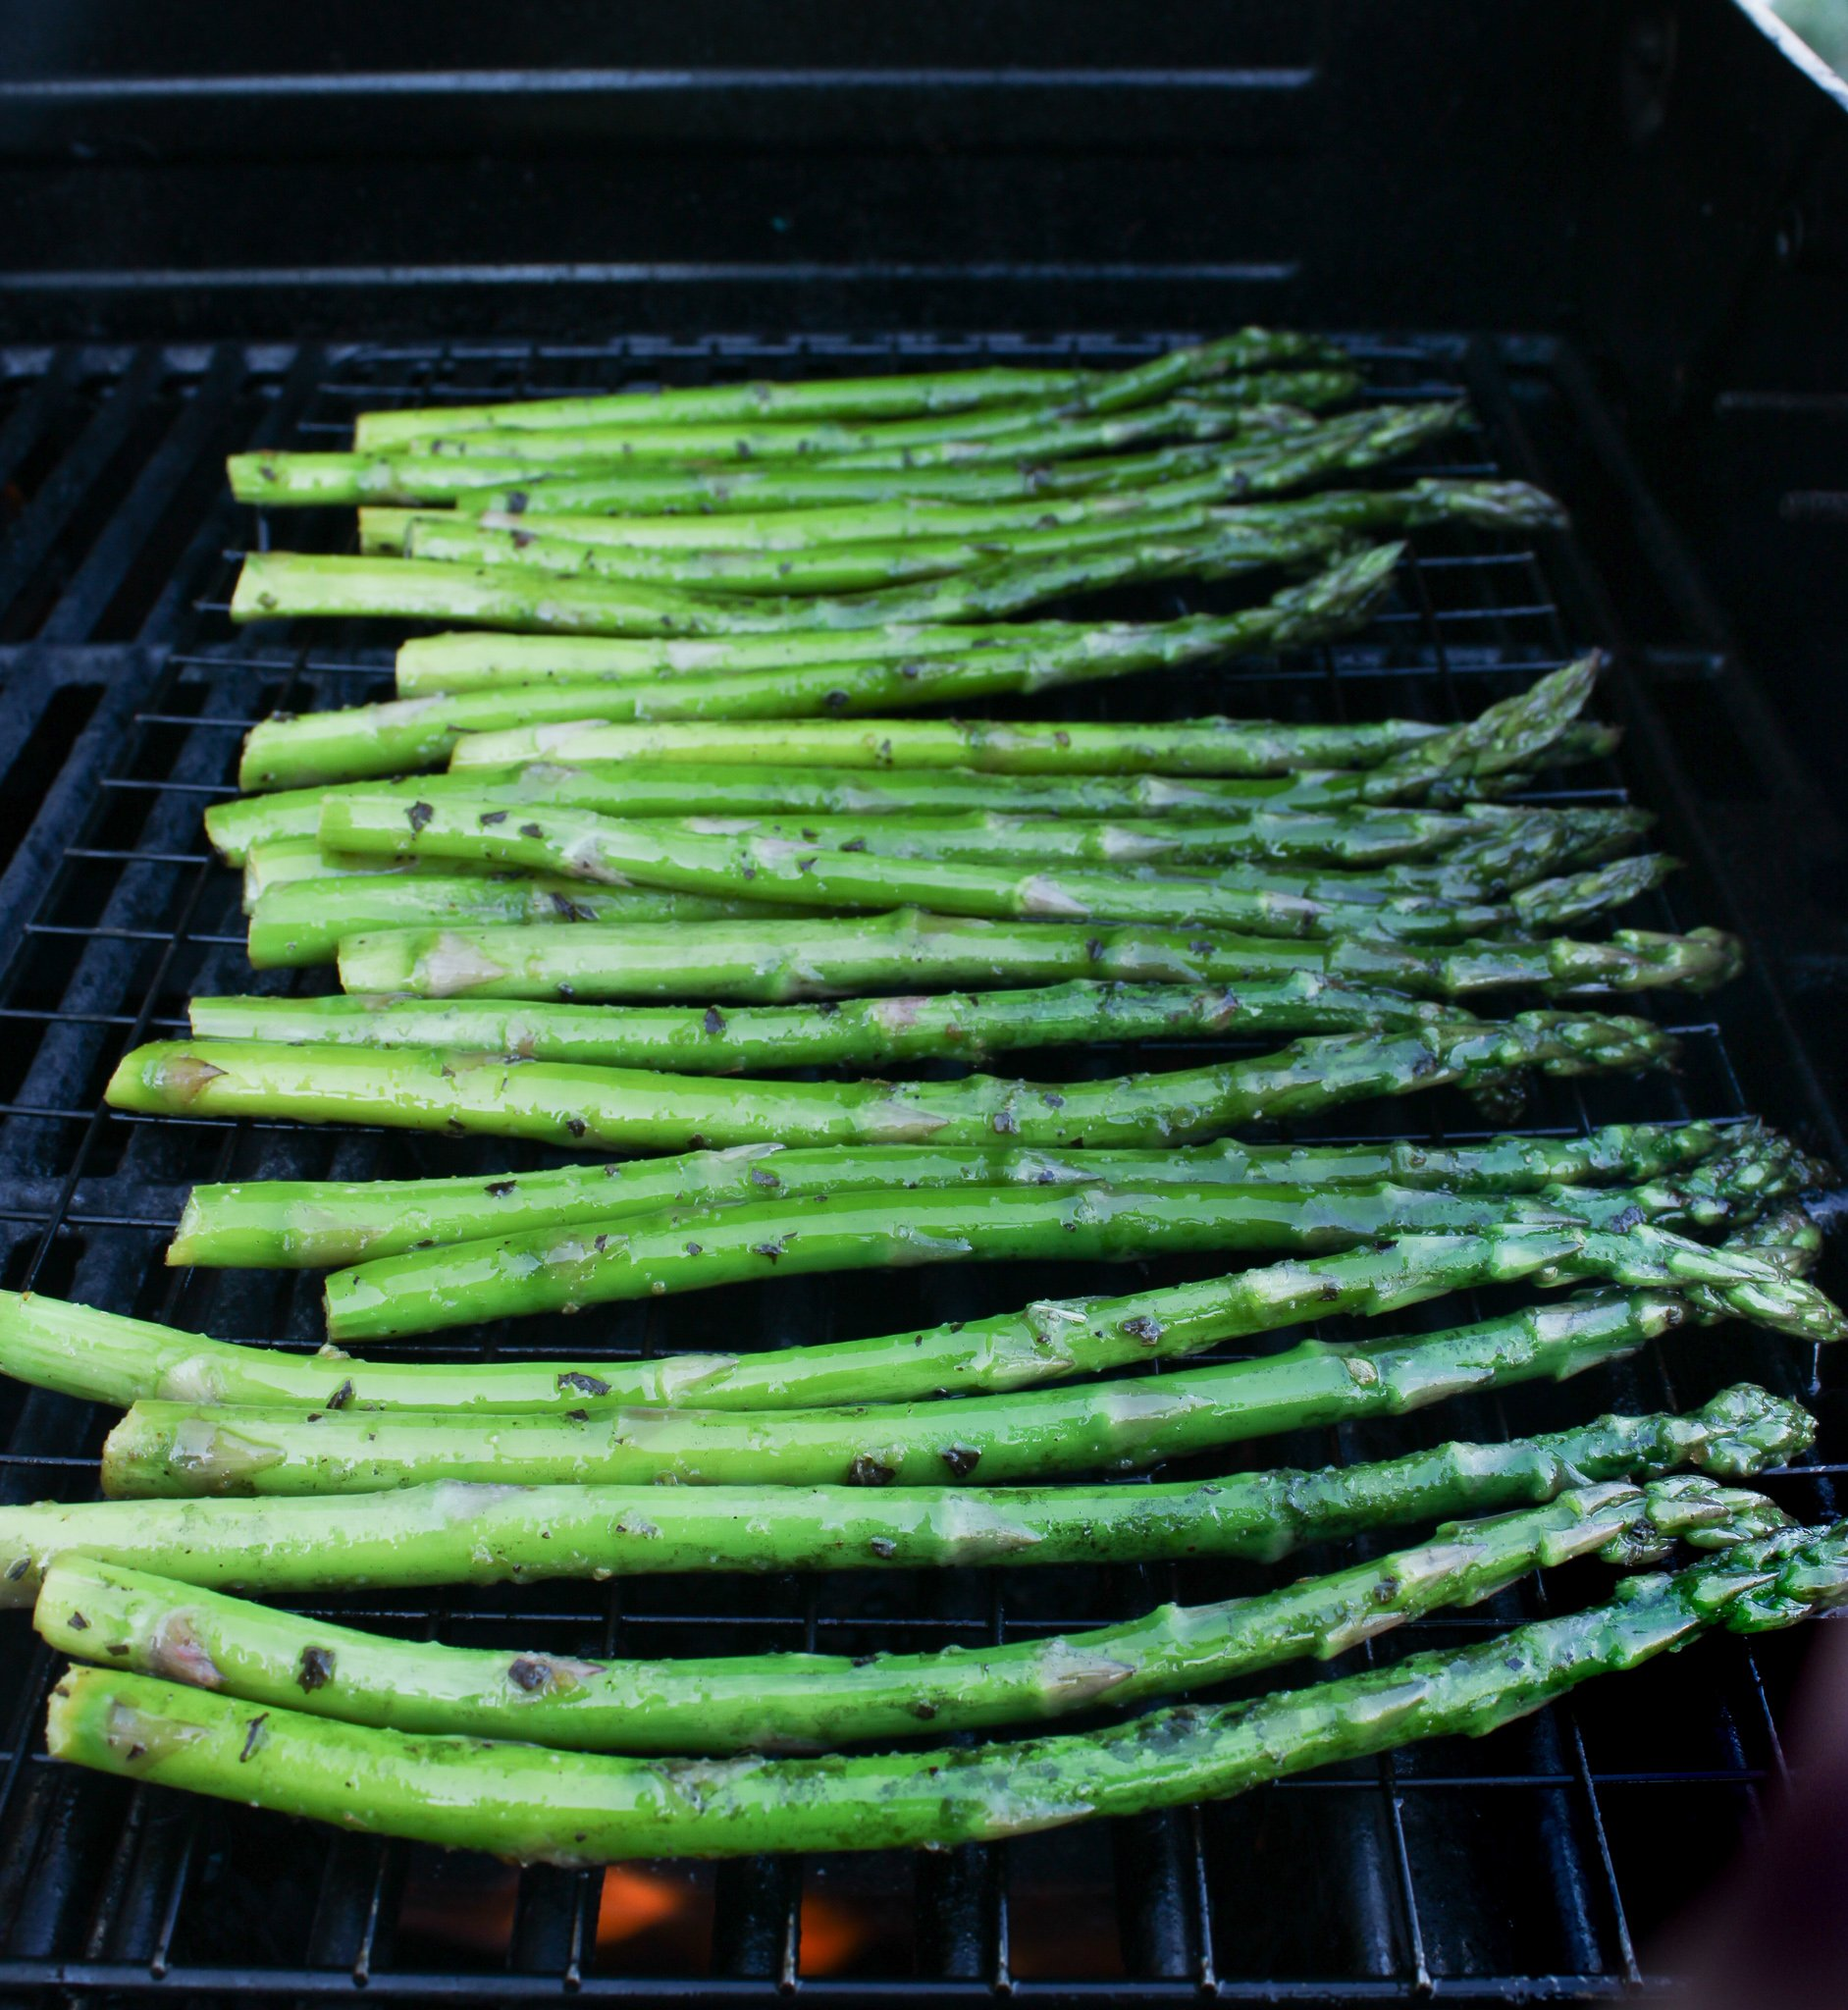 Asparagus being cooked on the grill.